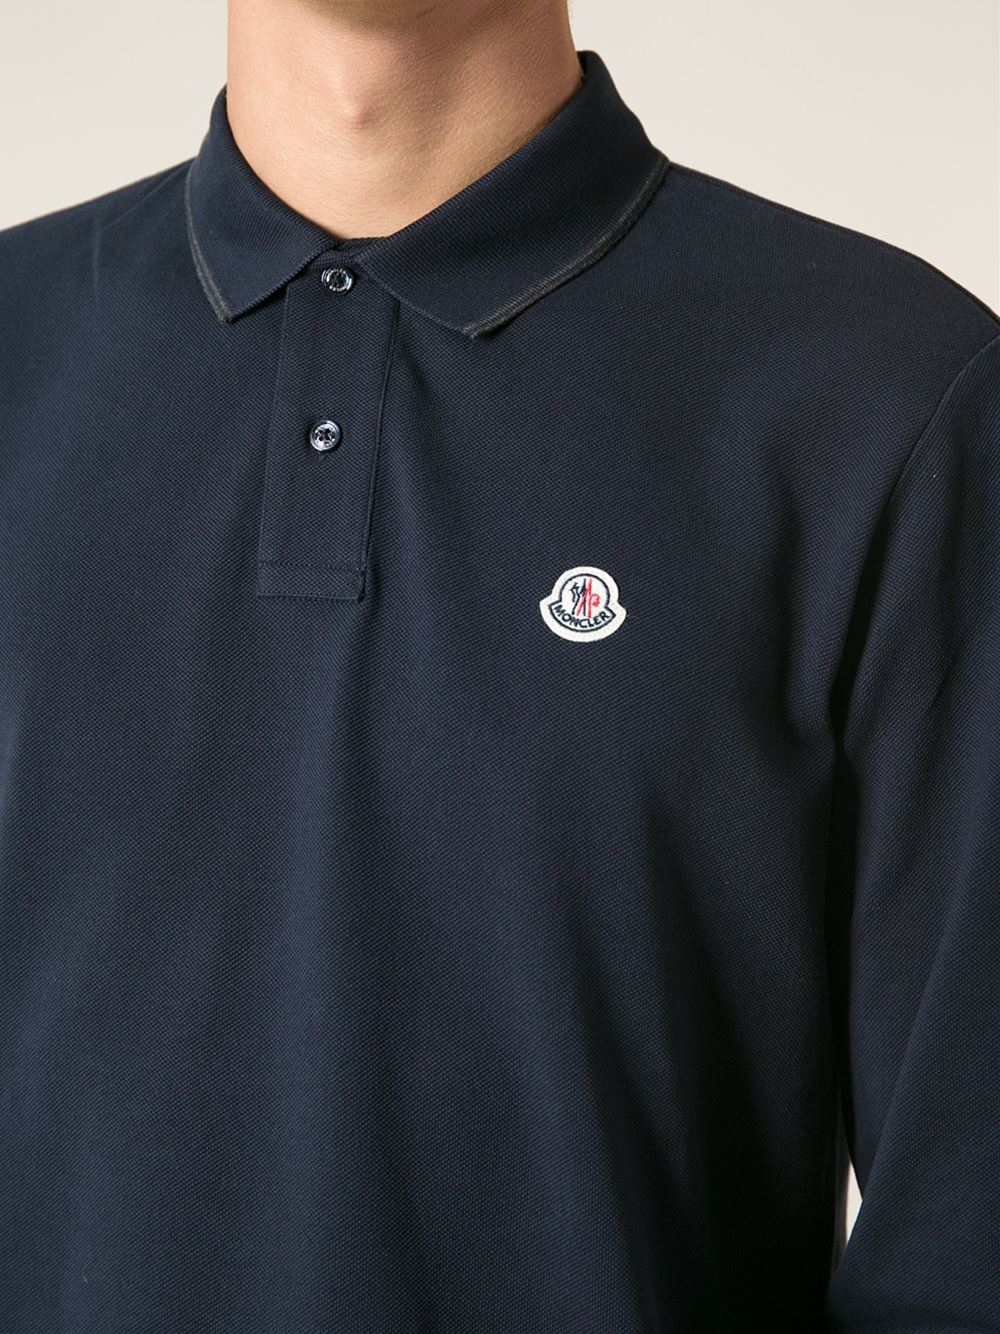 86fff056d Lyst - Moncler Long Sleeved Polo Shirt in Blue for Men